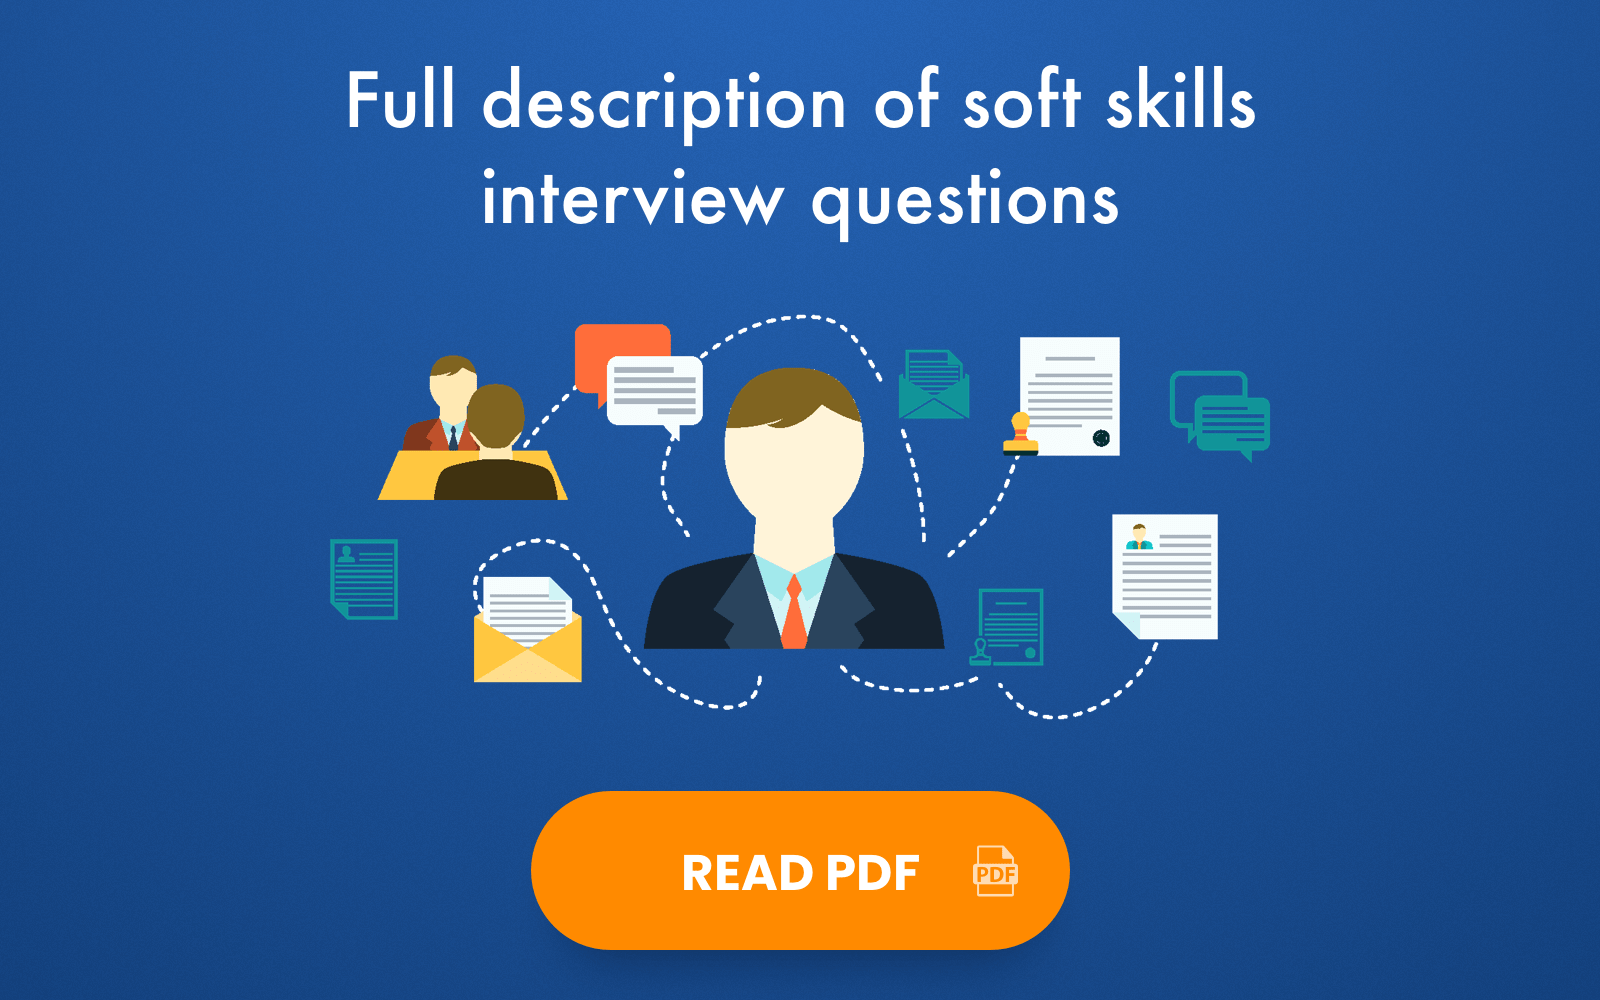 Node.js devs soft skills questions